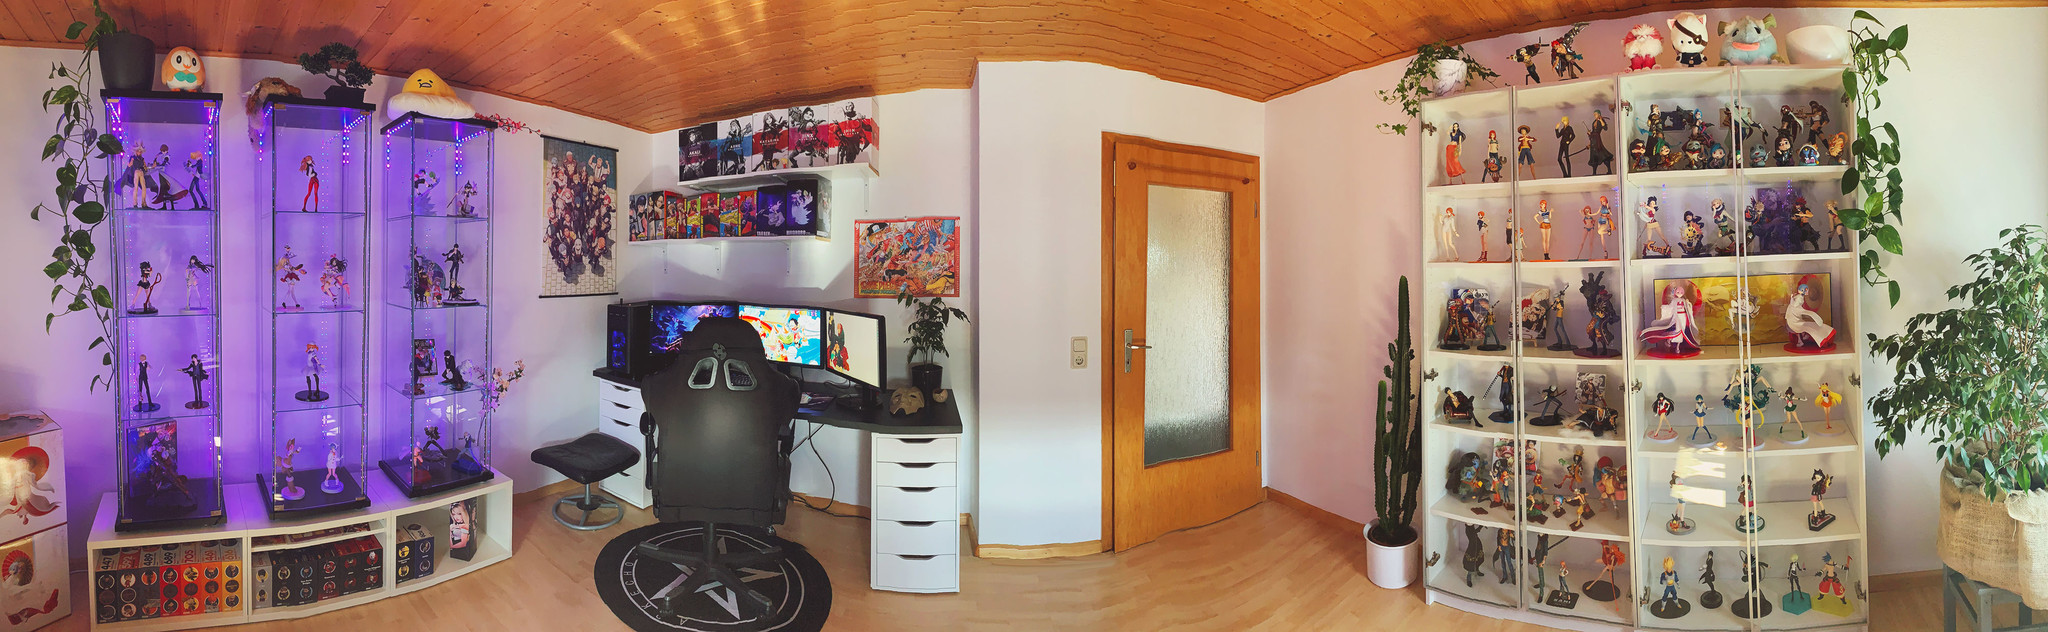 Panorama view of PC room (October 2021).